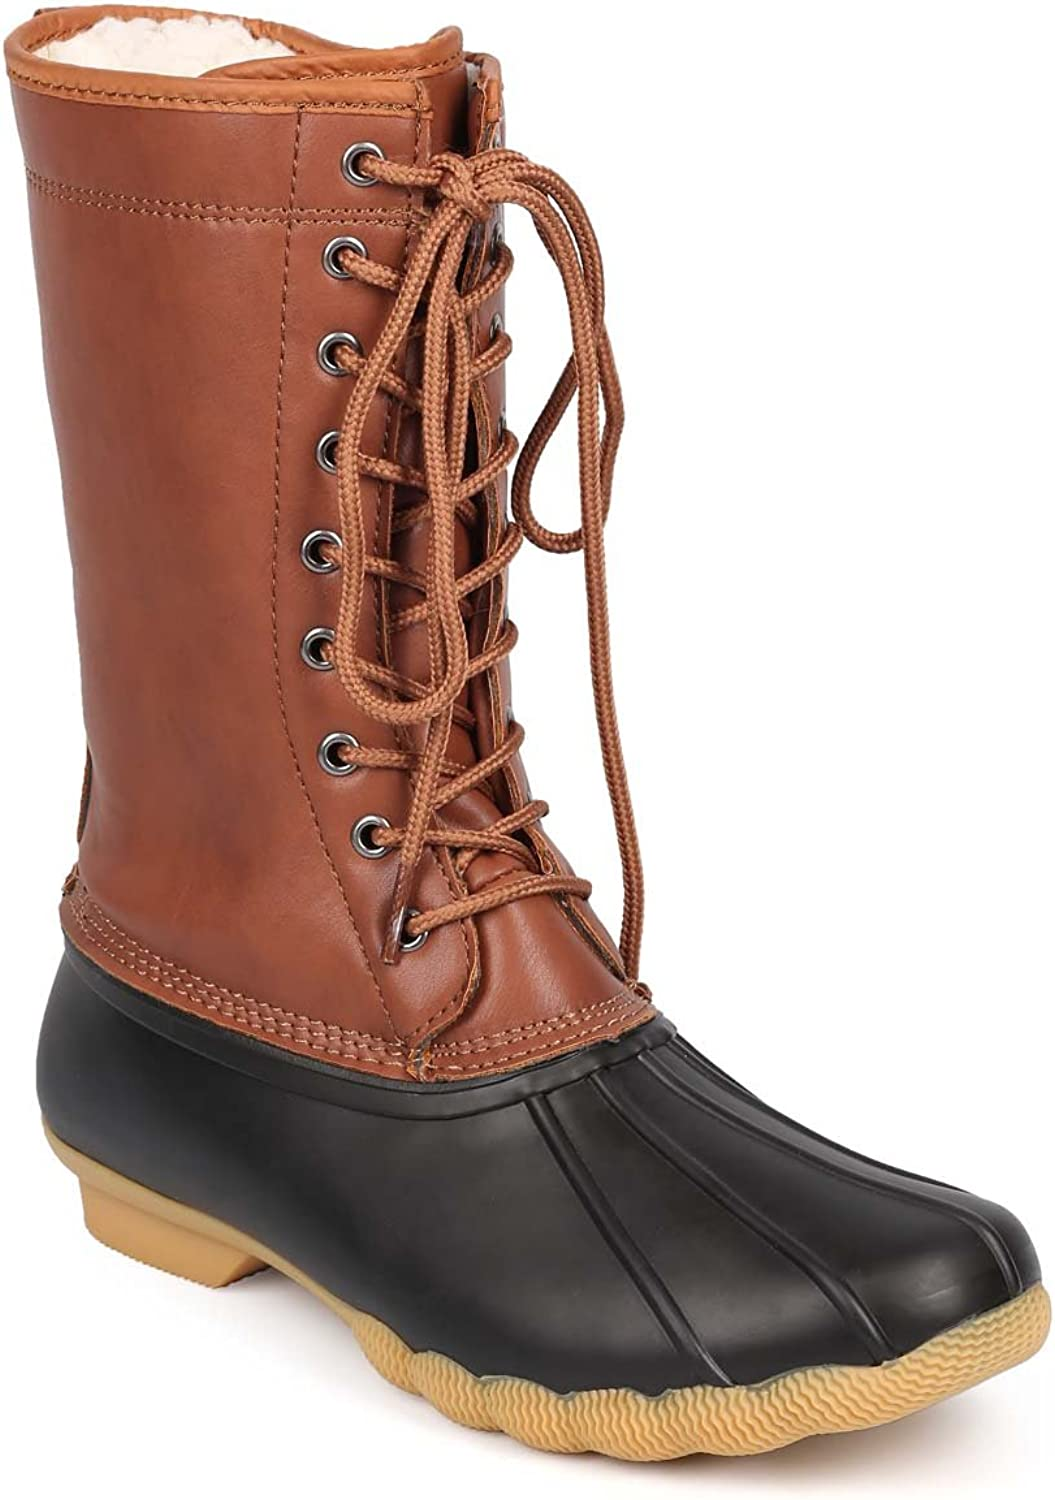 Refresh DD25 Women Two Tone Mix Media Shearling Lace Up Duck Boot - Black Cognac